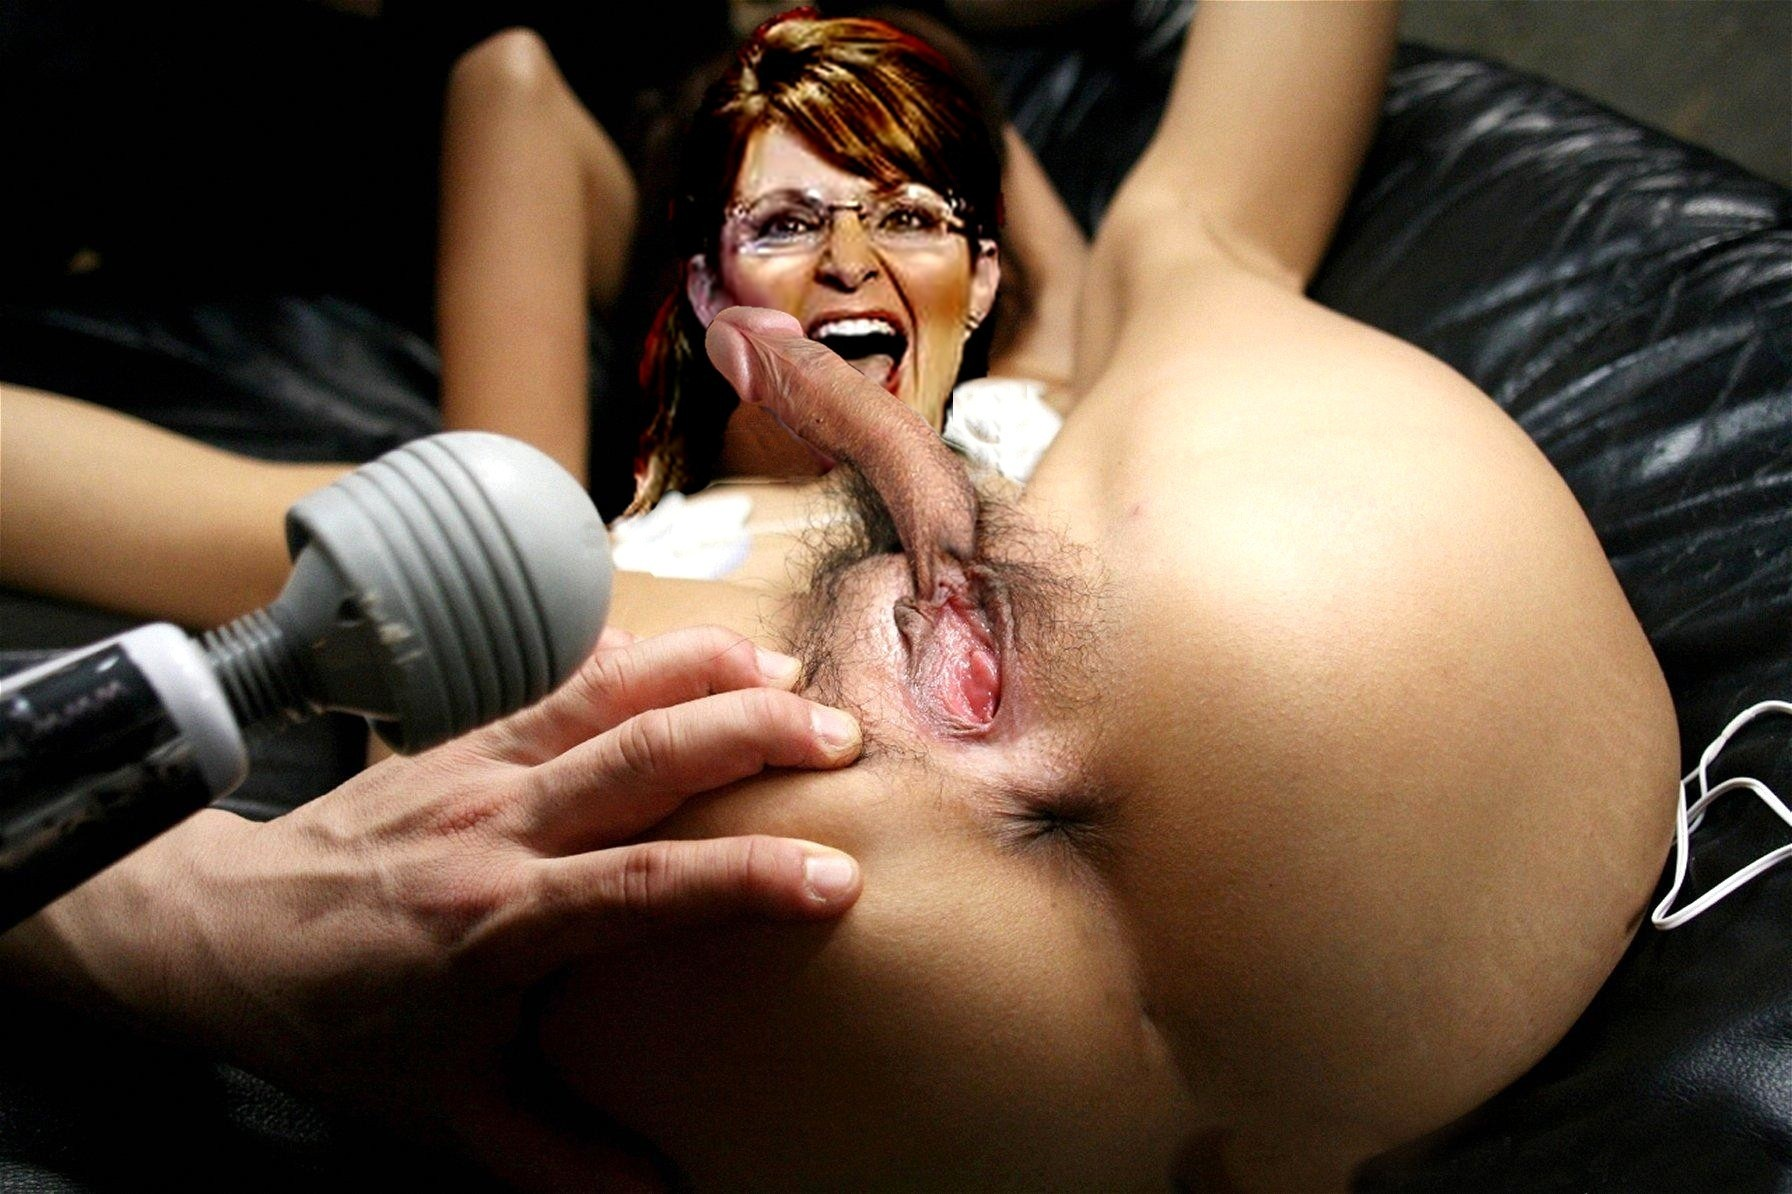 Congratulate, magnificent Sarah palin fake nude photo